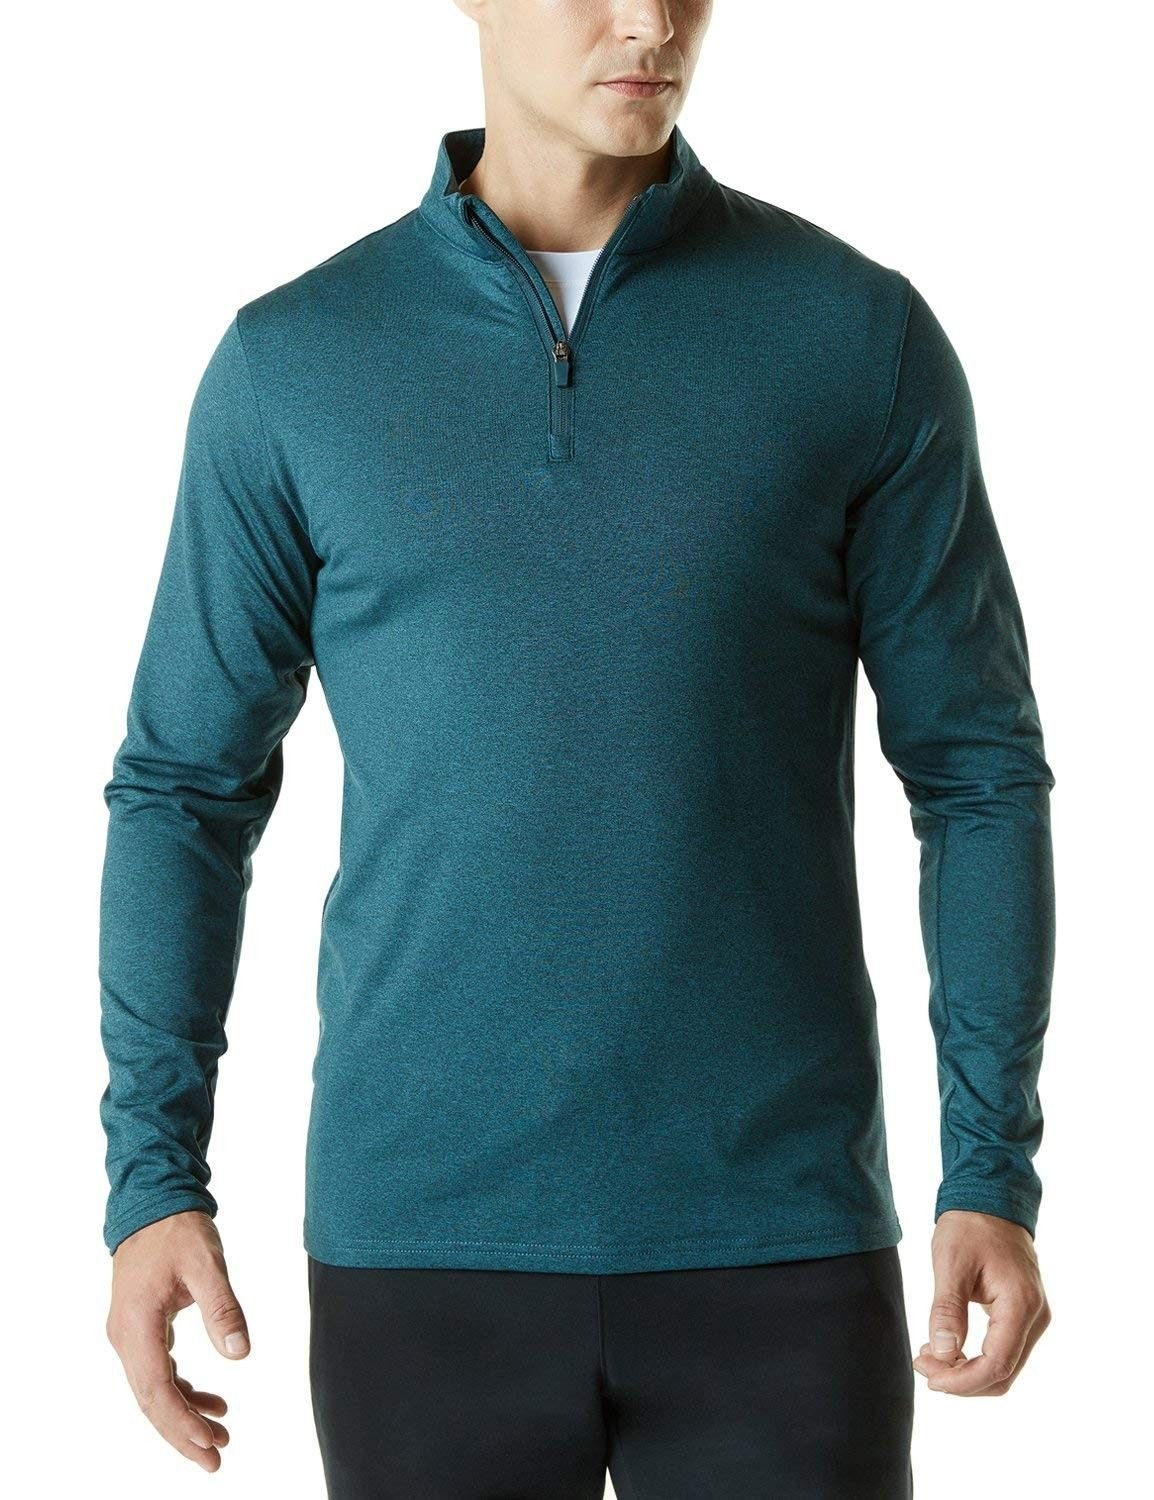 Pin On Men S Sports Fitness Clothing Collection